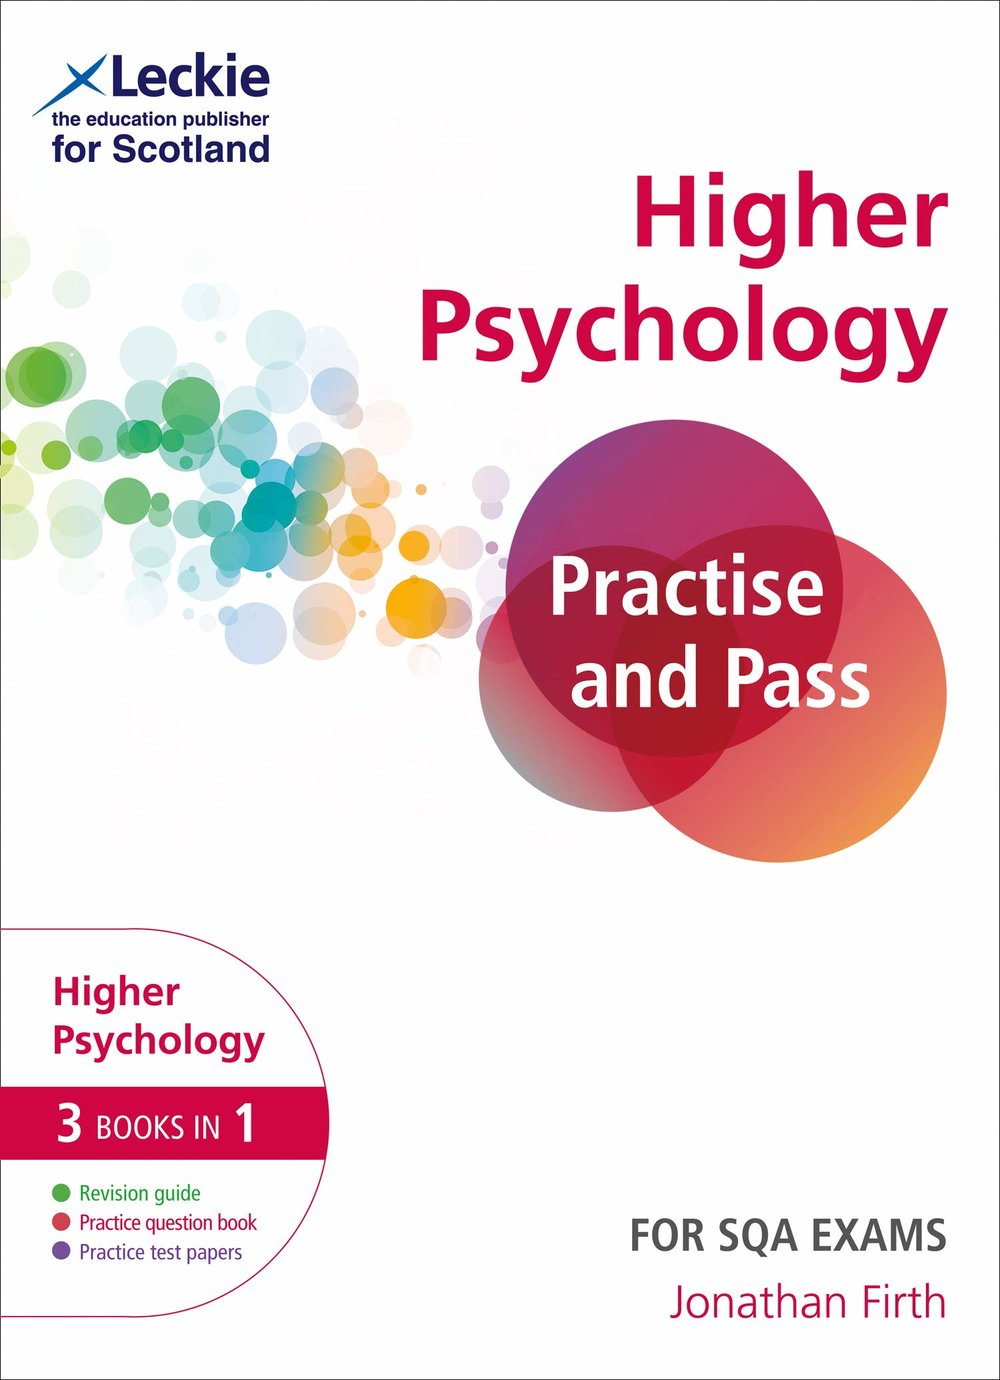 Higher Psychology: Practise and Pass - Brand new for 2019, this book comprises a revision guide that includes all of the Higher Psychology topics, an extended section of practice questions and tasks, and three full-length sample exams.There is also a brief guide to the Higher Assignment, and evidence-based information on how to study and revise effectively.This book is a must have for Higher Psychology students, for the 2018-19 academic year onwards.